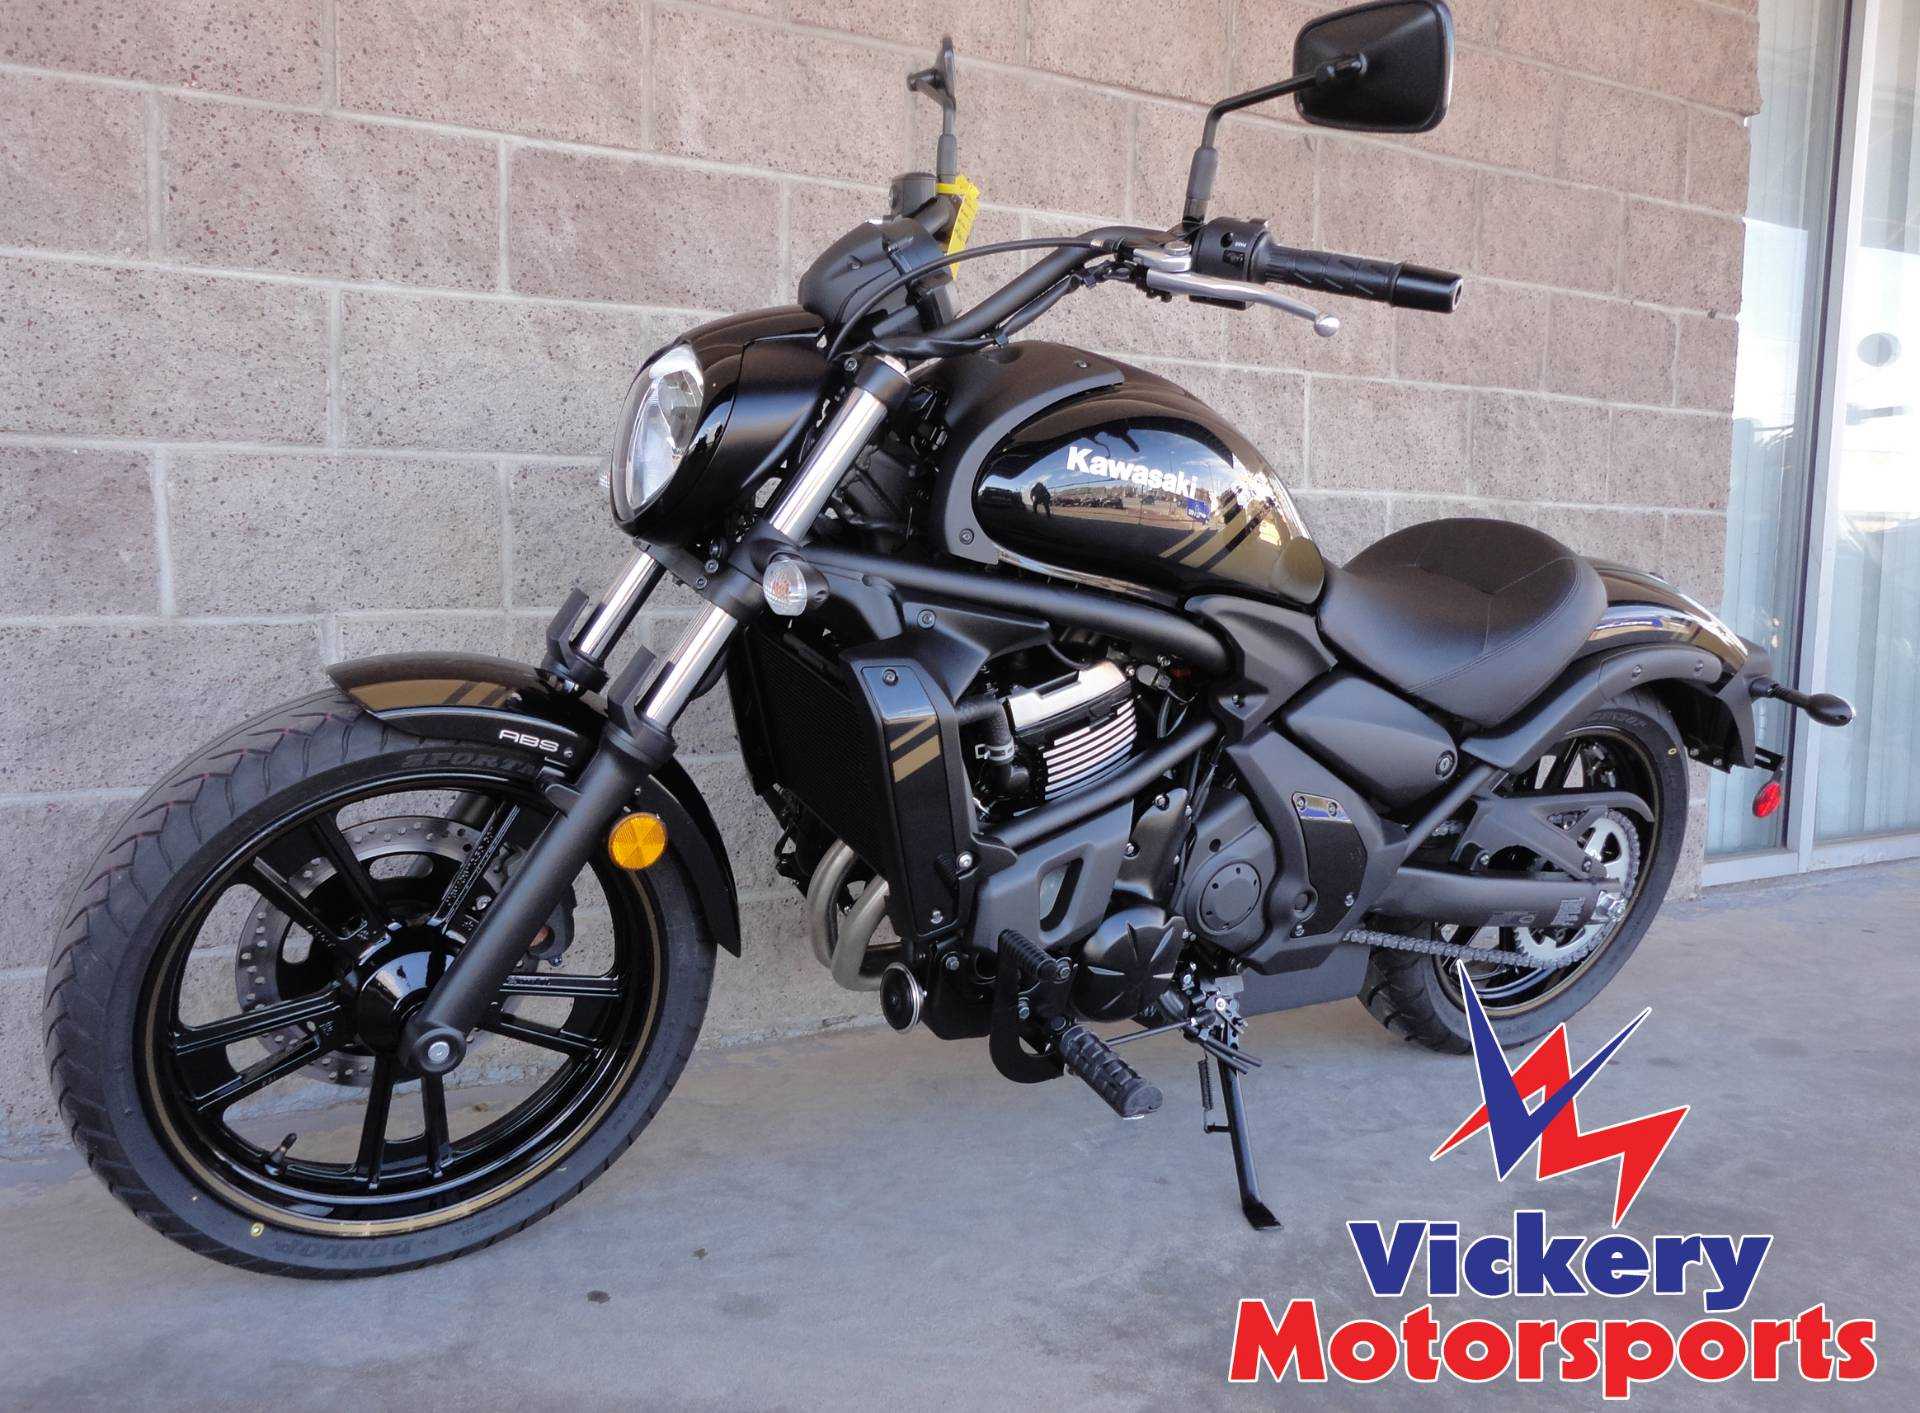 2020 Kawasaki Vulcan S ABS in Denver, Colorado - Photo 1